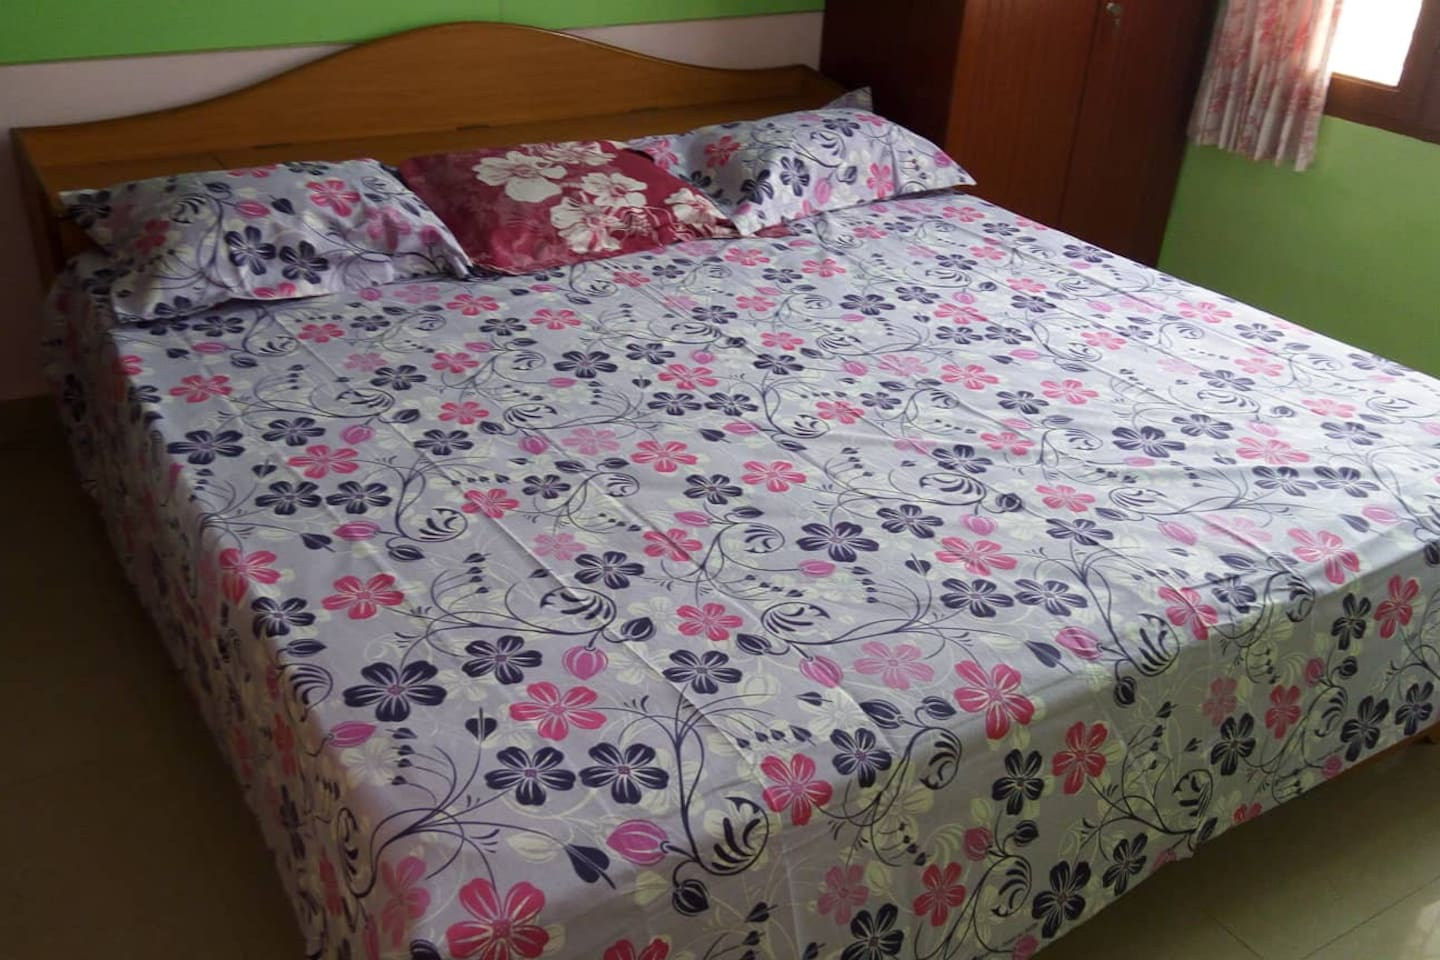 Jumbo sized bed for extra comfort. Room is very spacious with an attached bath.